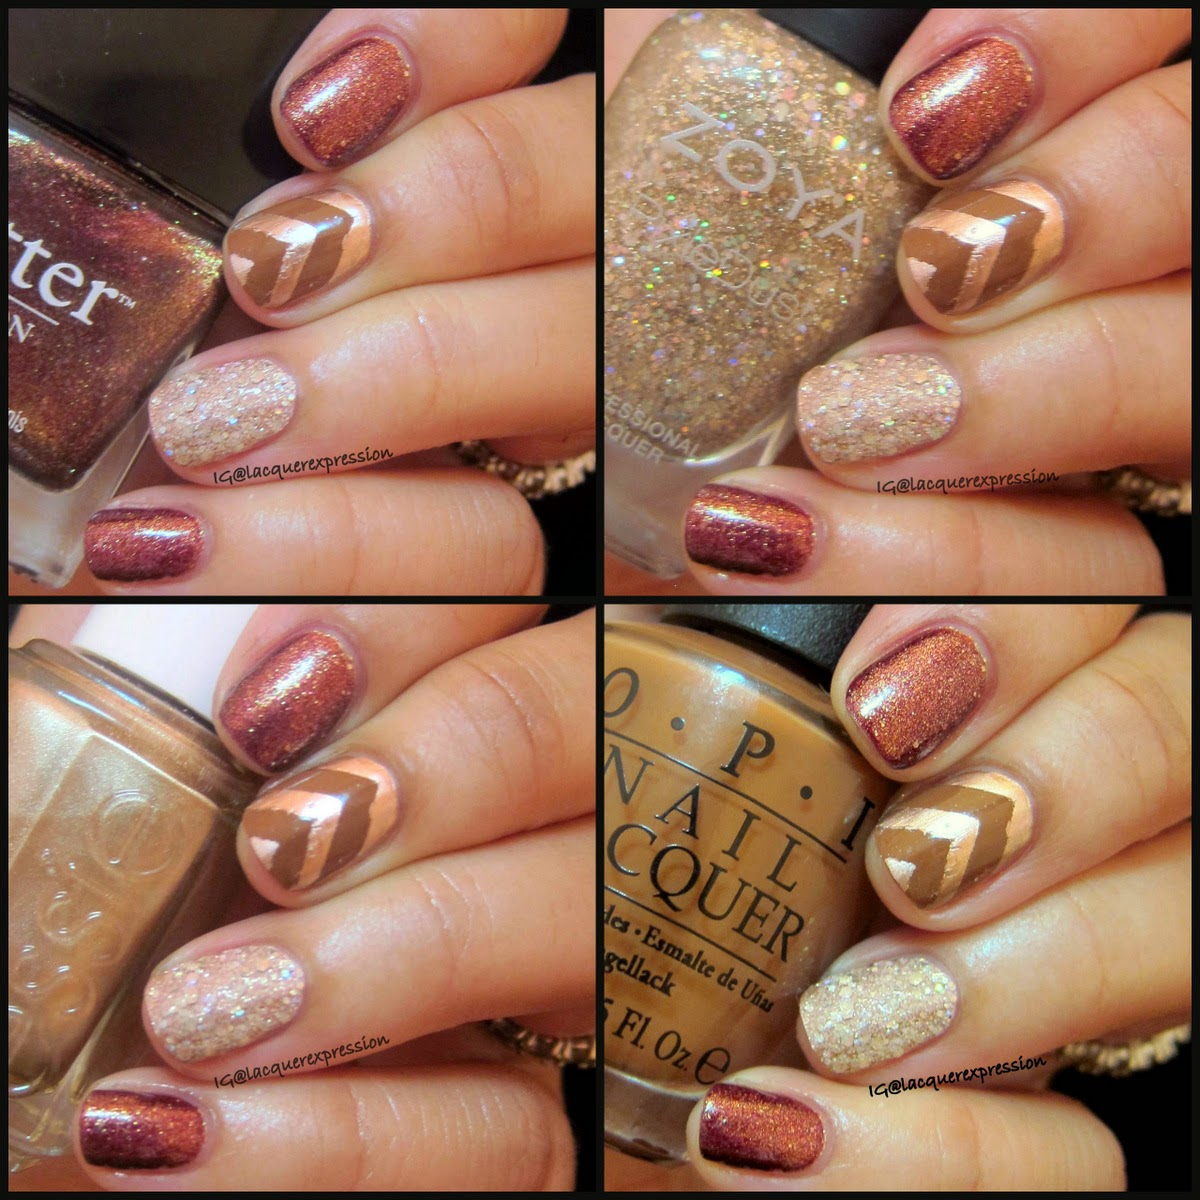 Fall inspired manicure using butter london brown sugar  zoya bar essie penny talk o.p.i. a-piers to be tan